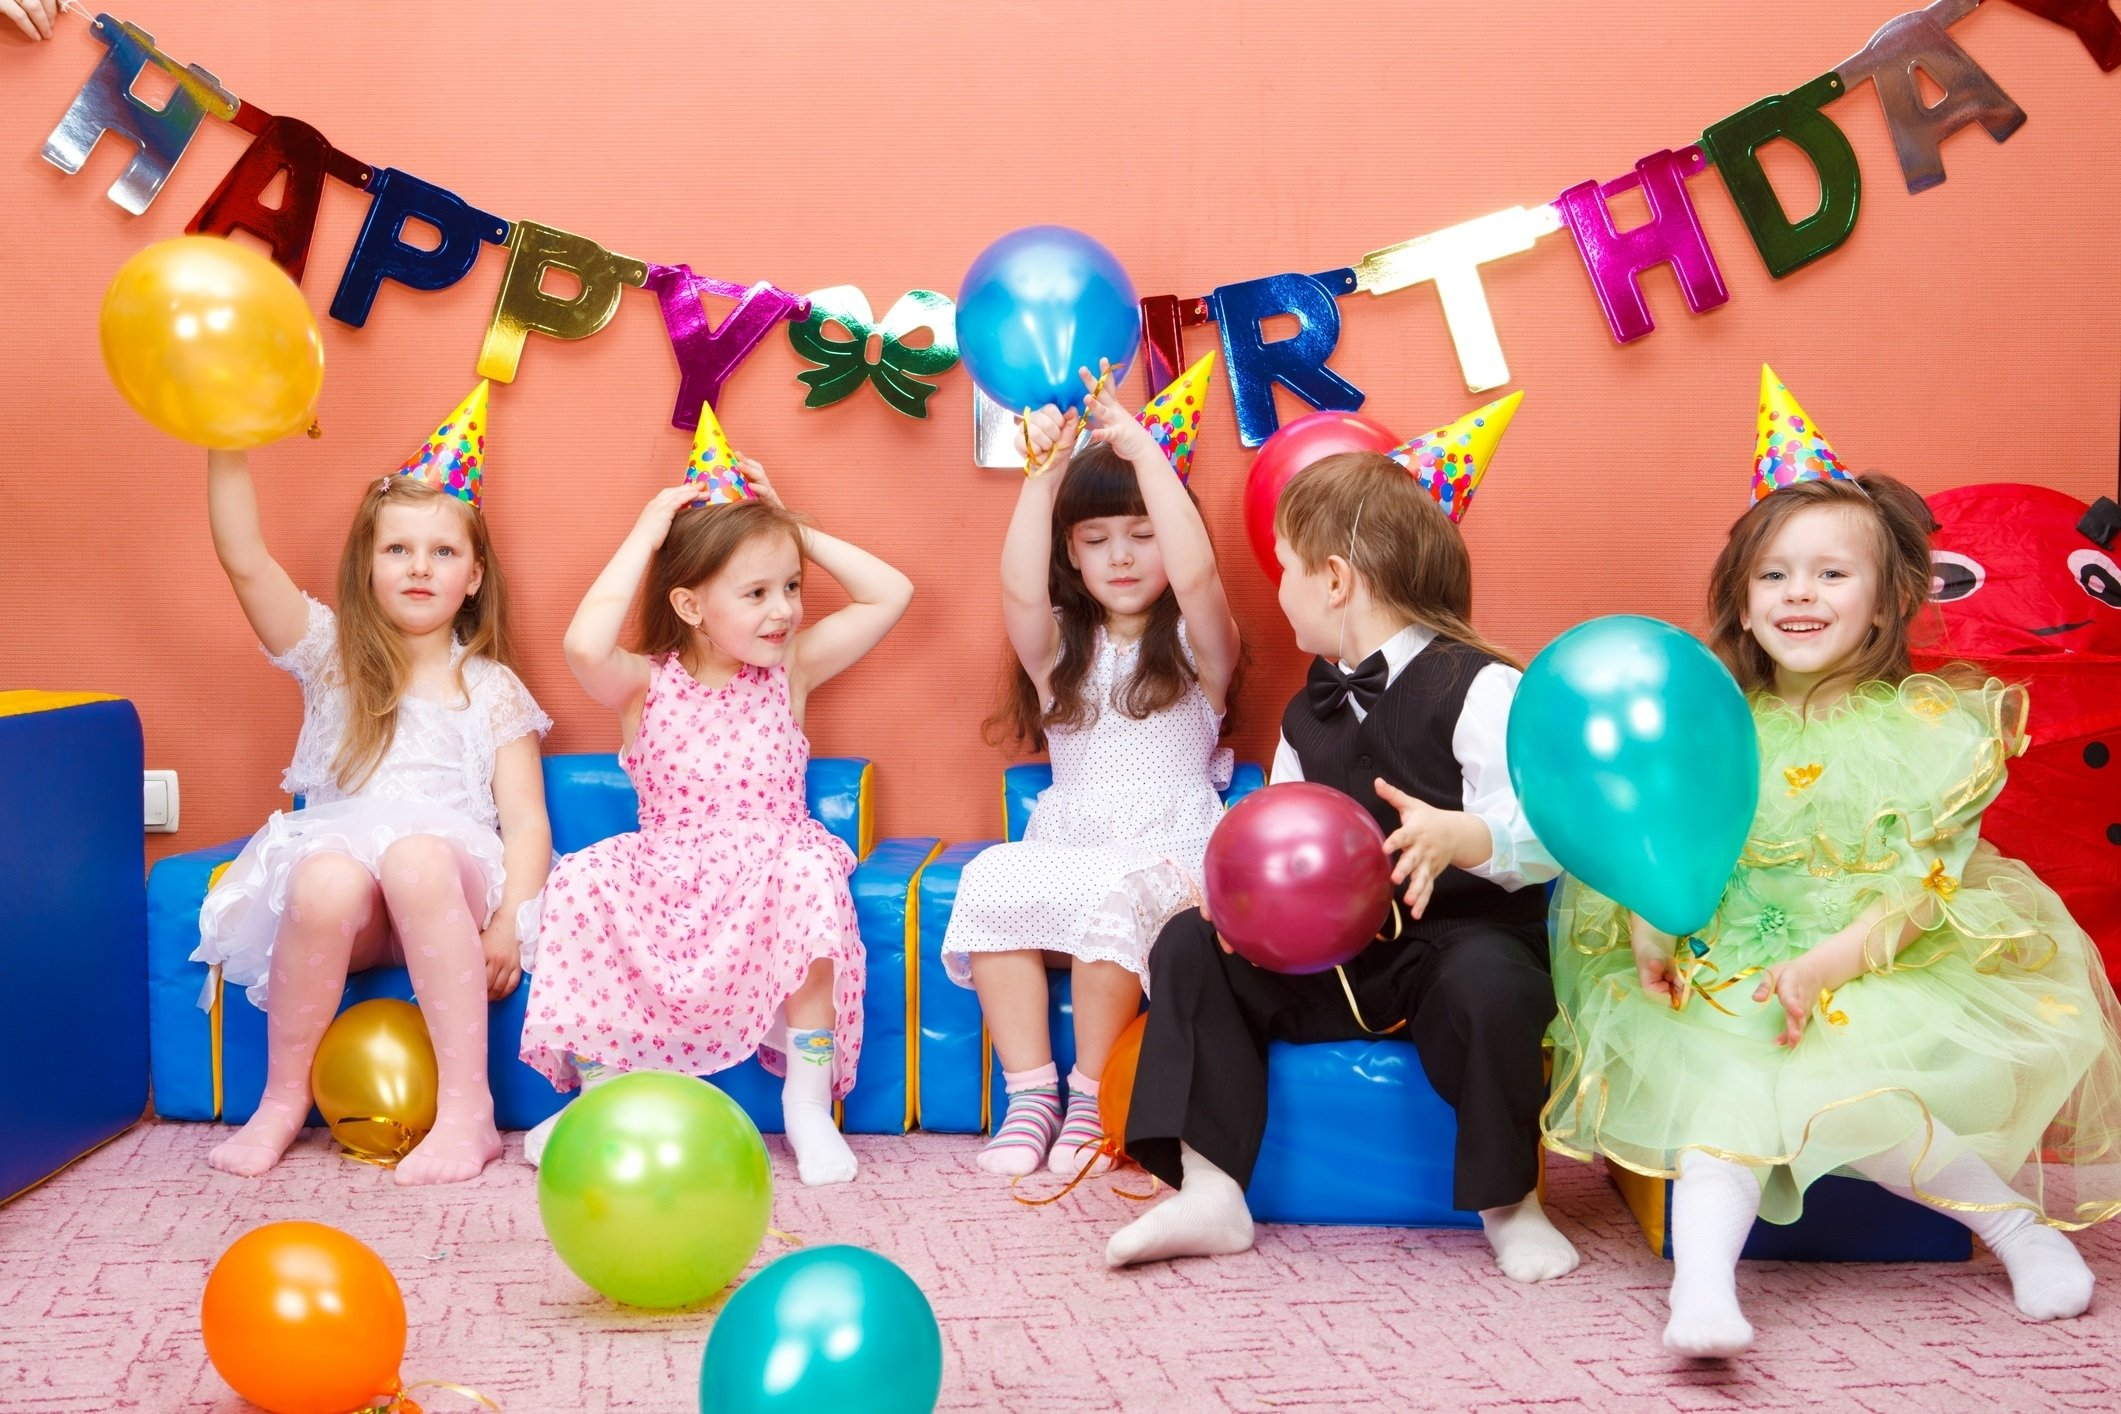 10 Nice 12 Year Old Birthday Party Ideas For Boys 45 Awesome 11